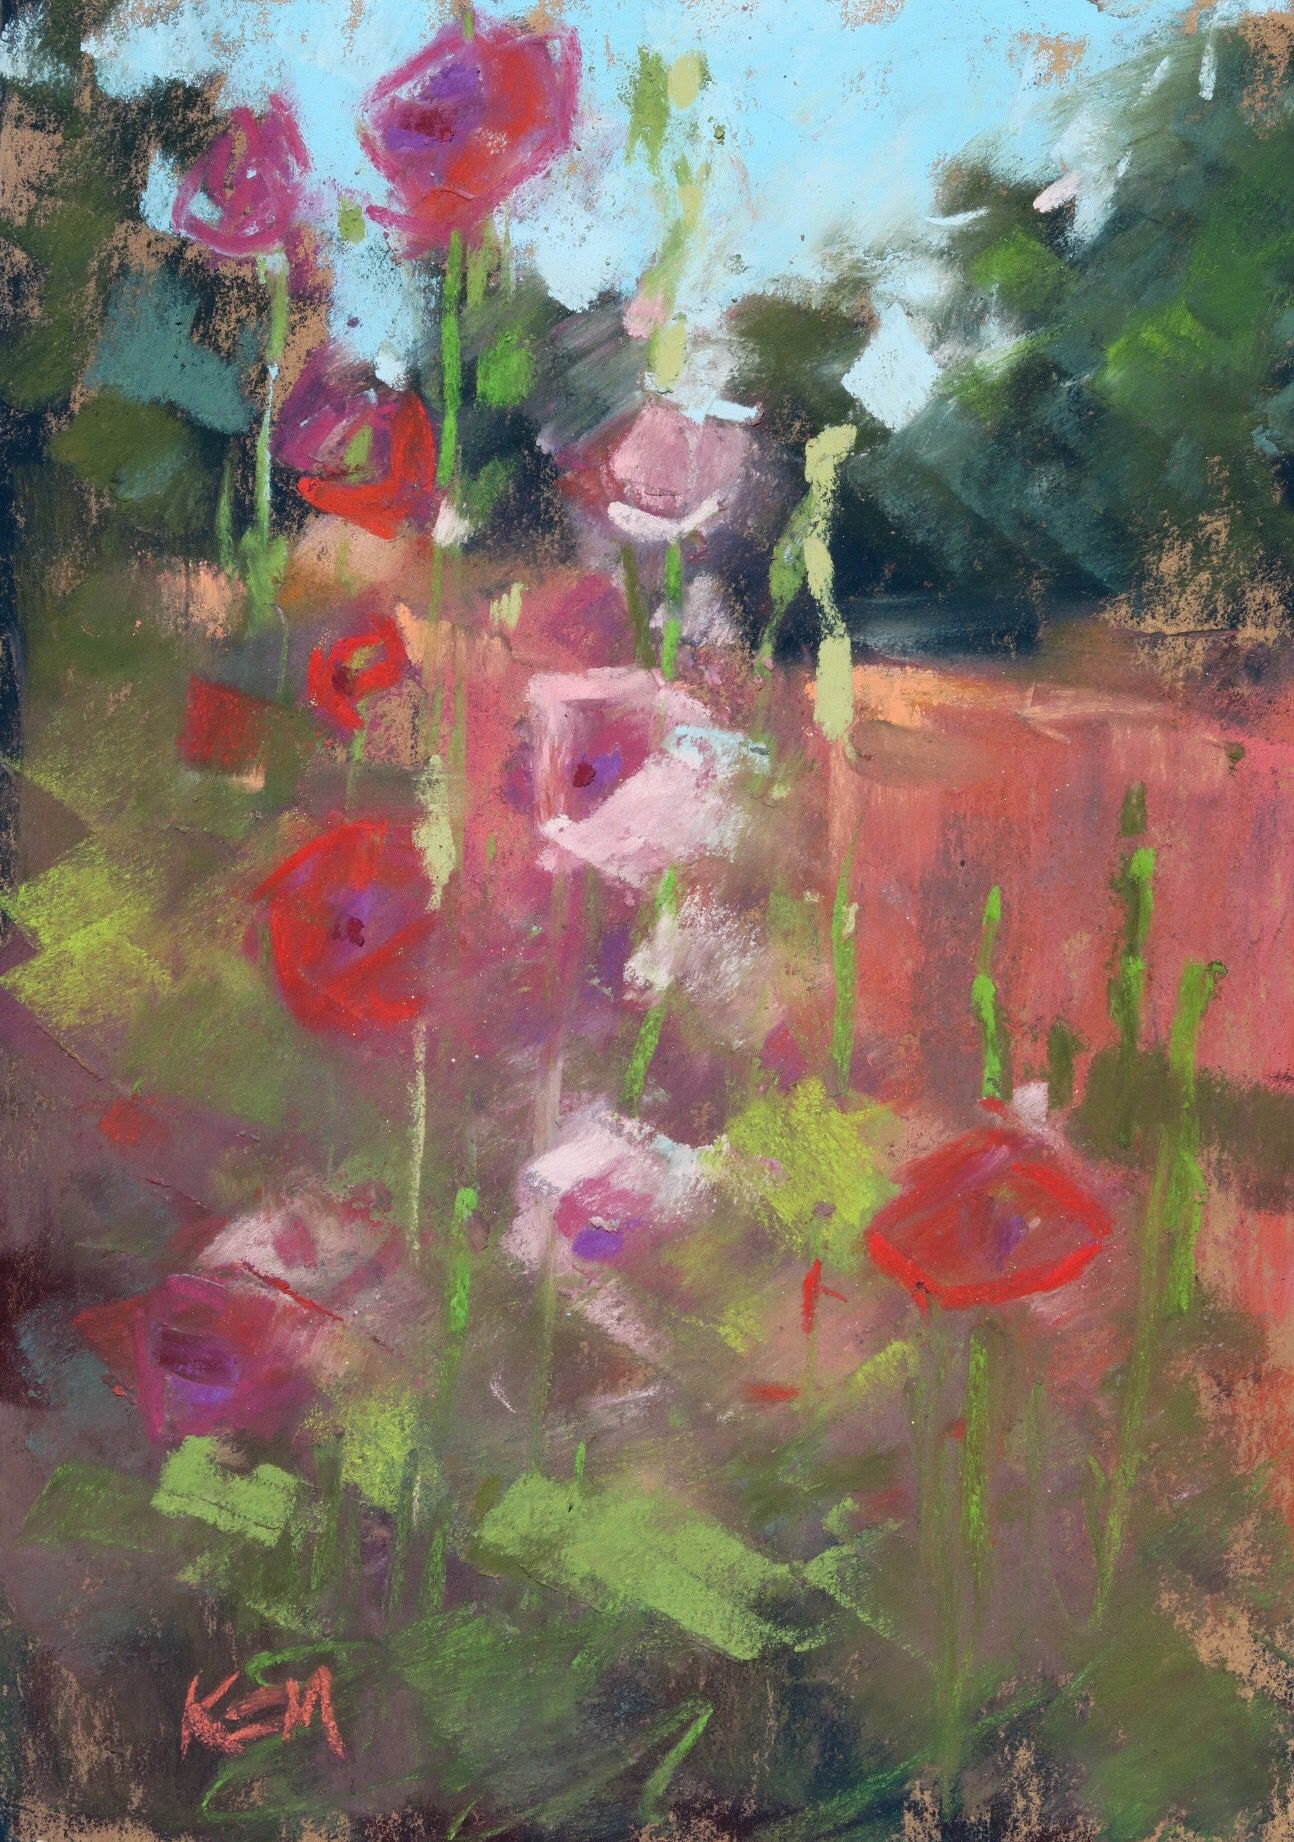 Karen Margulis - 'Old Town Hollyhocks'. 5x7. Pastel.